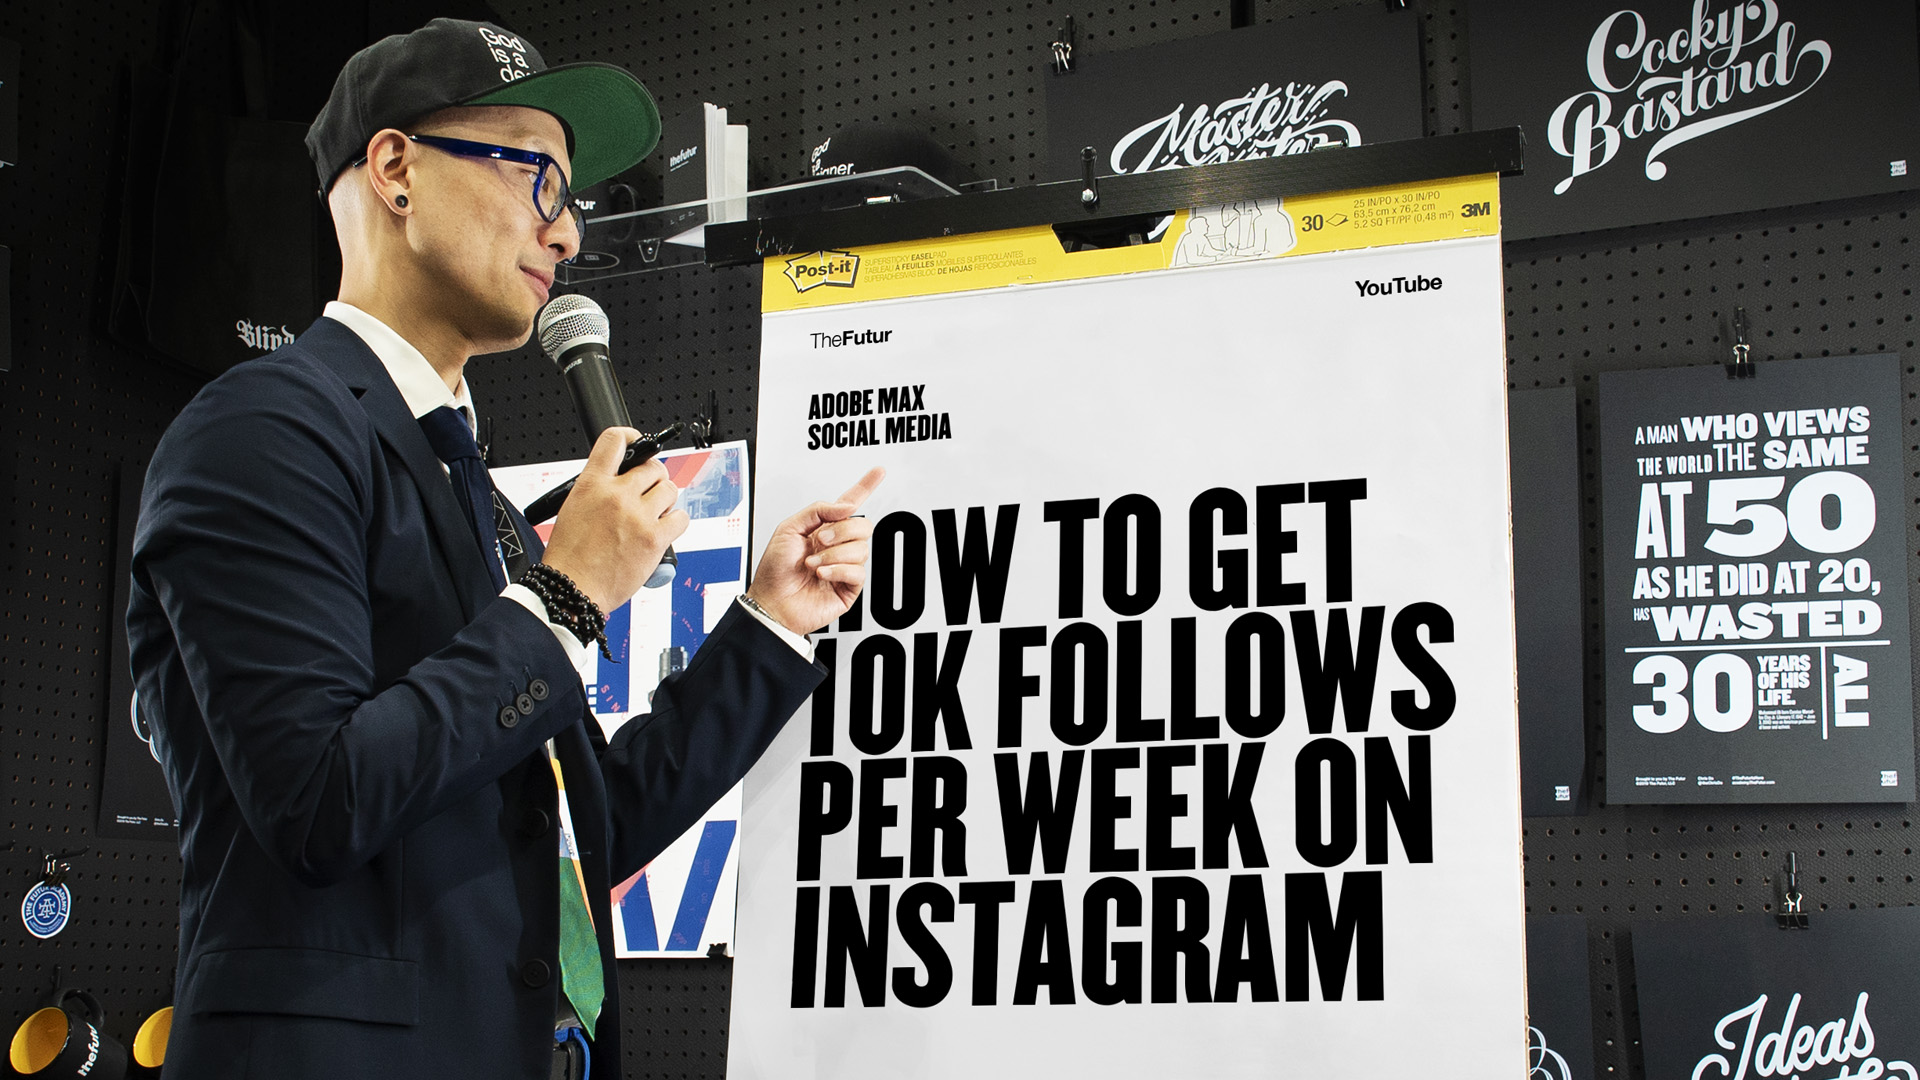 How to Get 10k Followers on Instagram Per Week